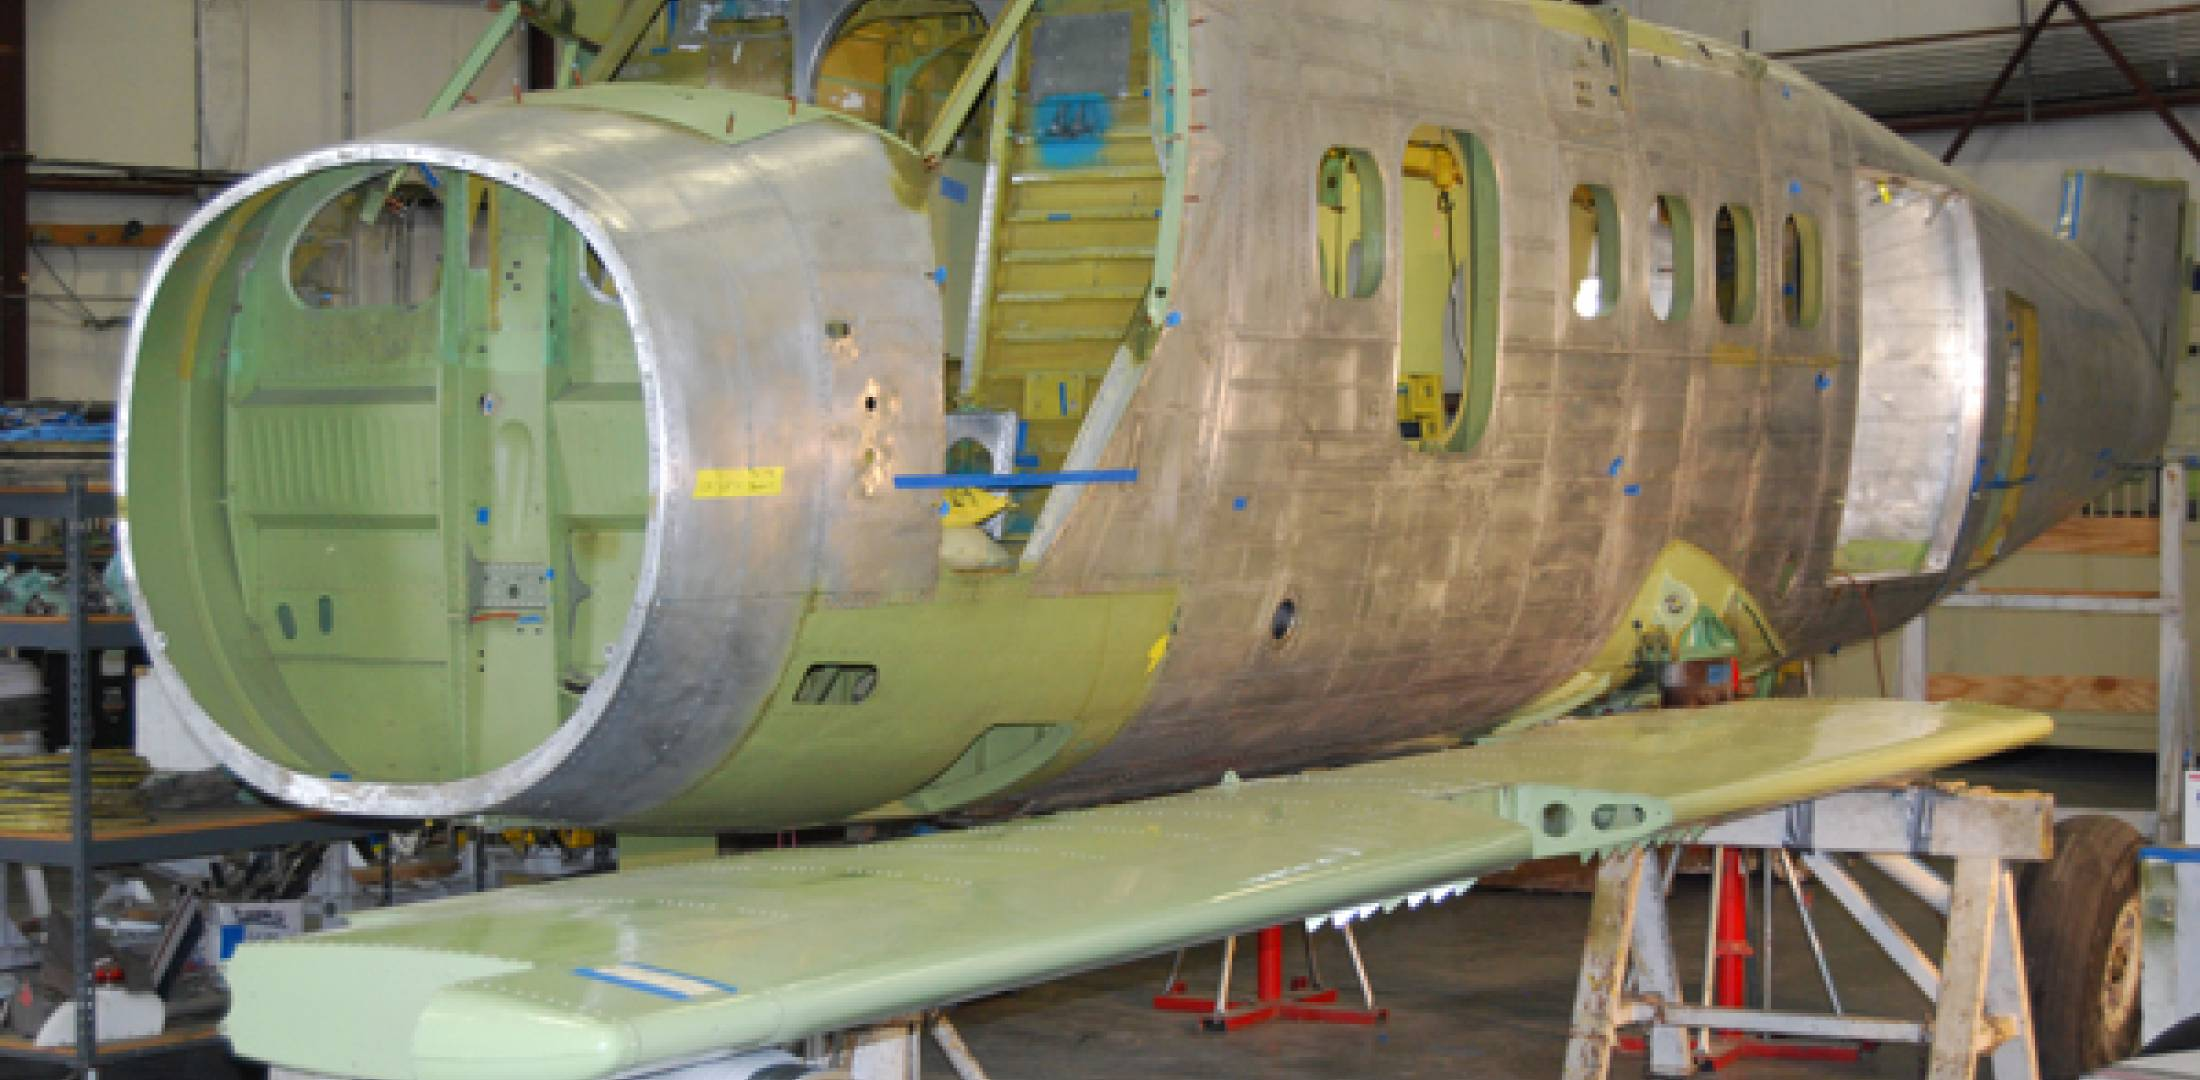 Ikhana offers a remanufactured Twin Otter fuselage with a new fatigue life of 65